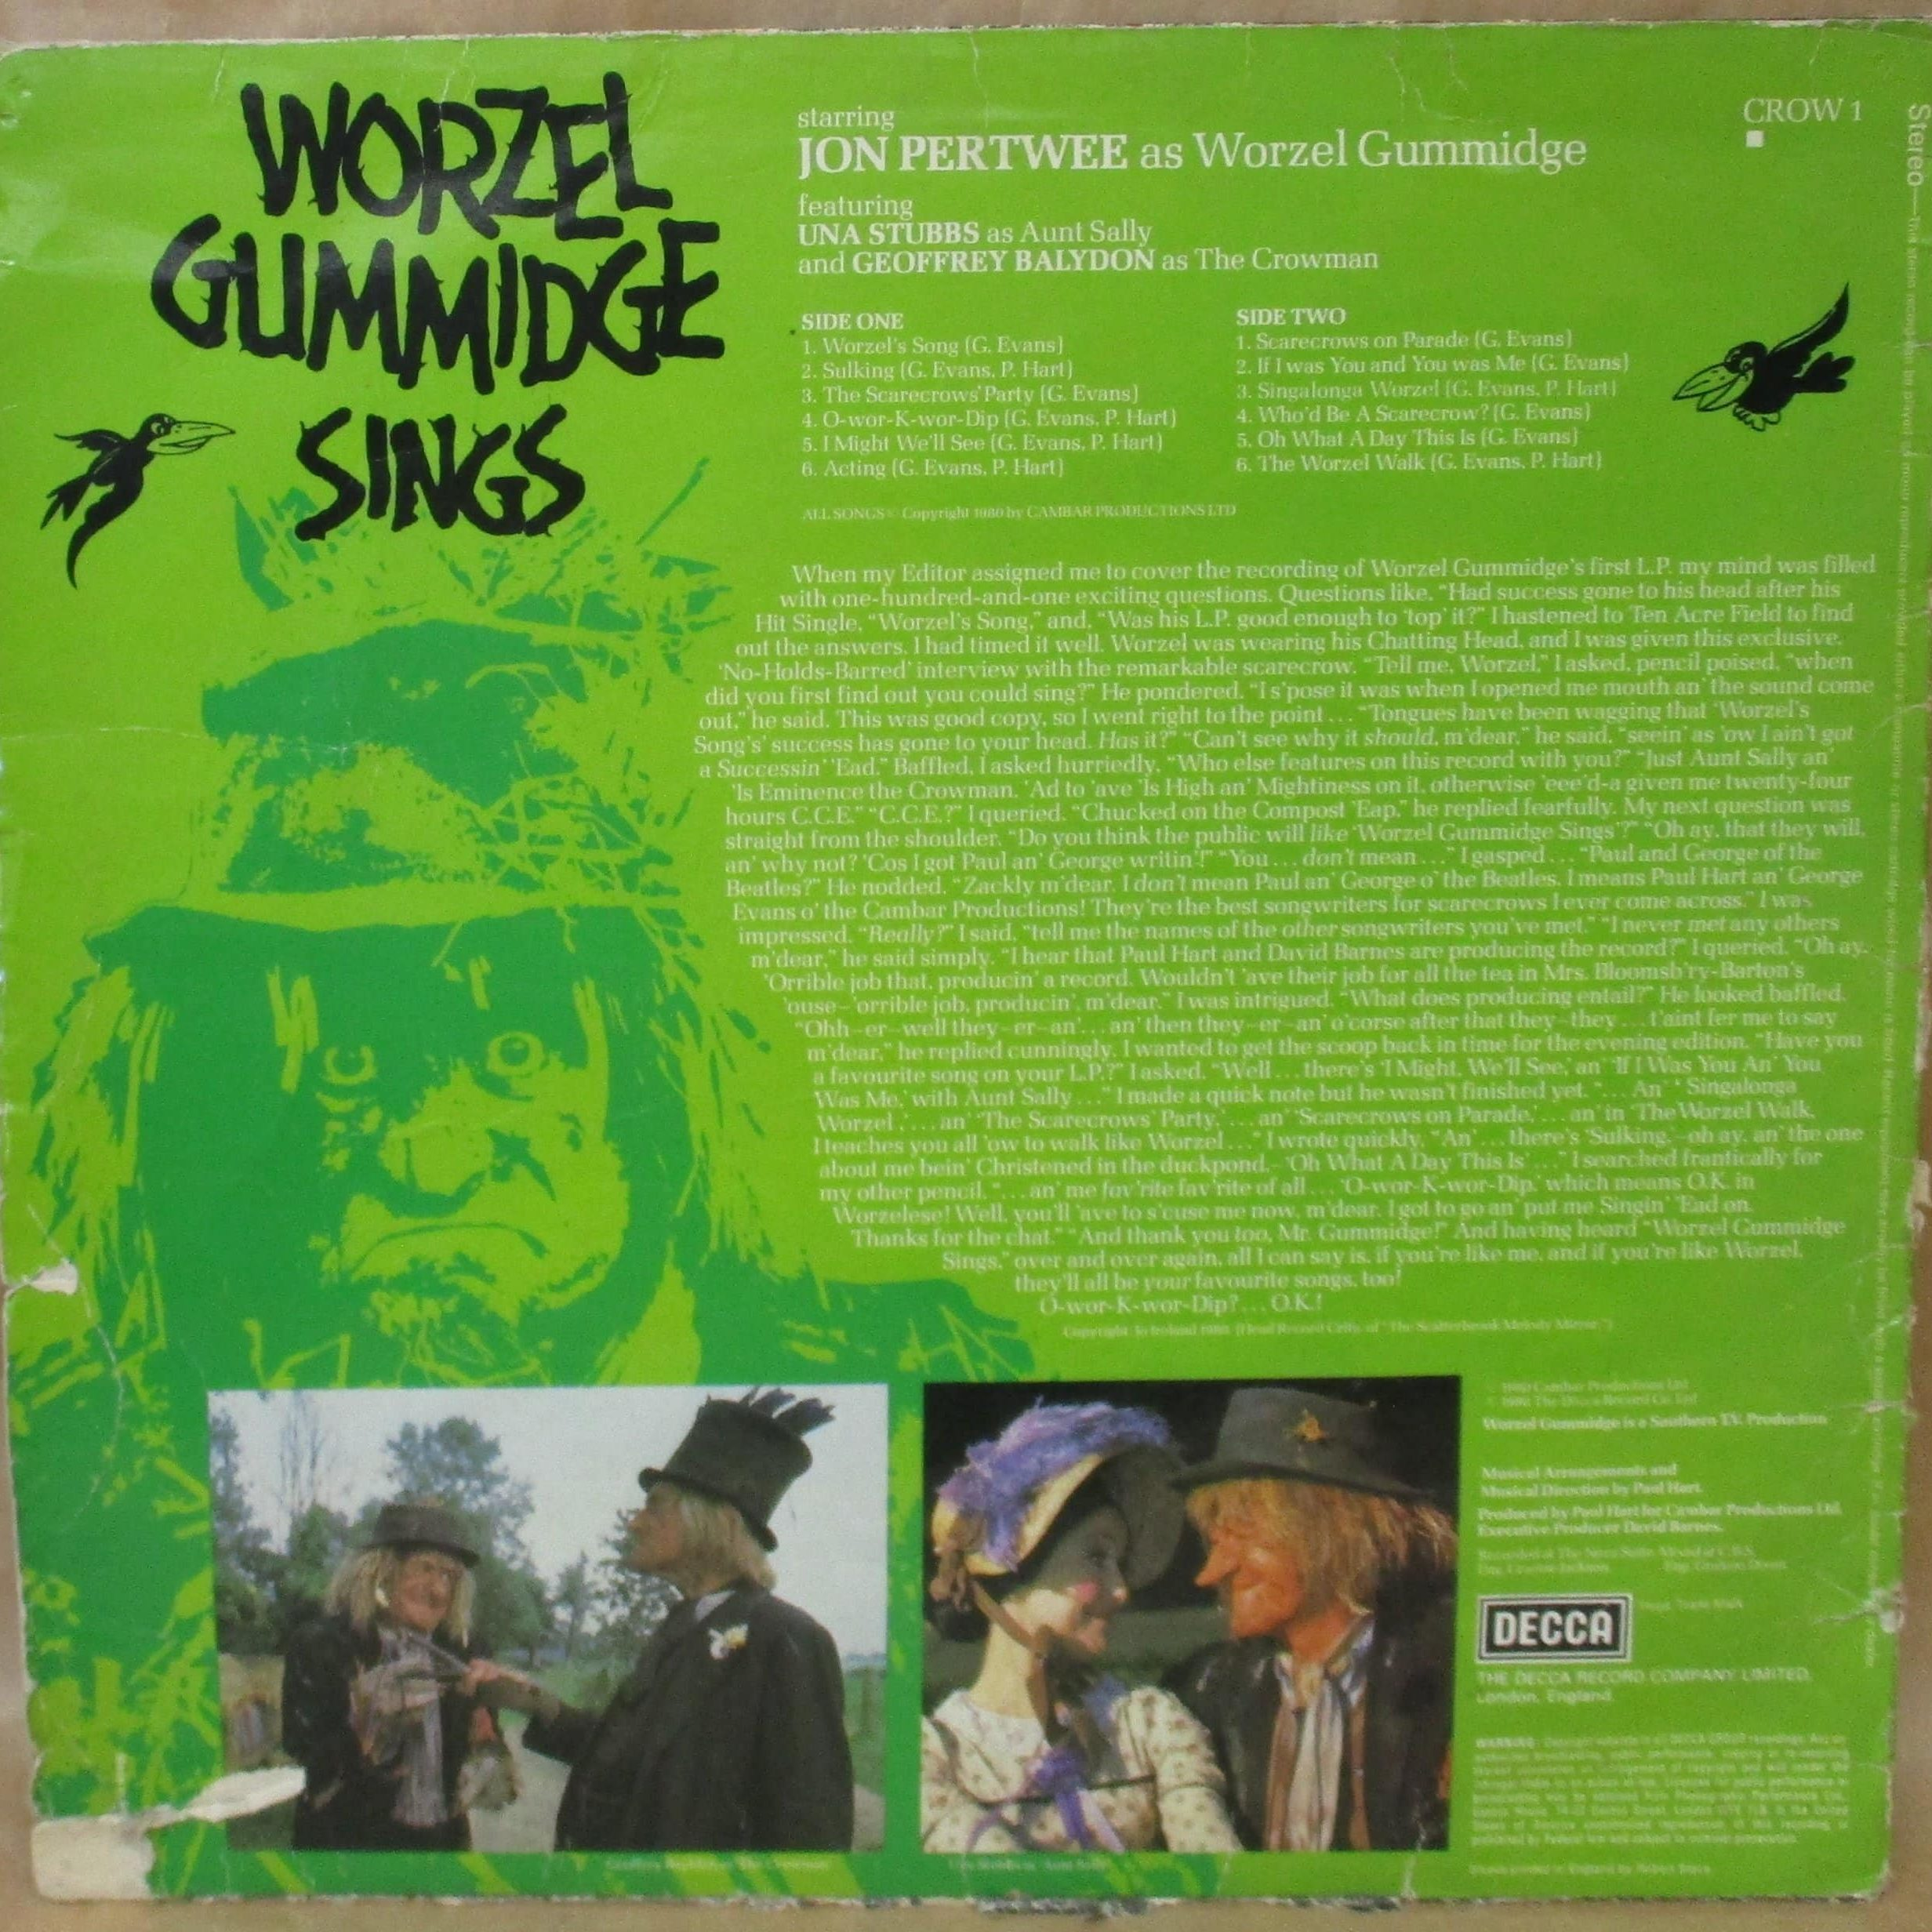 bb02a79846c39424c19fadd4ca6f e1571738899578 Peter Jackson Did The Special Effects, And 19 Other Facts About Worzel Gummidge